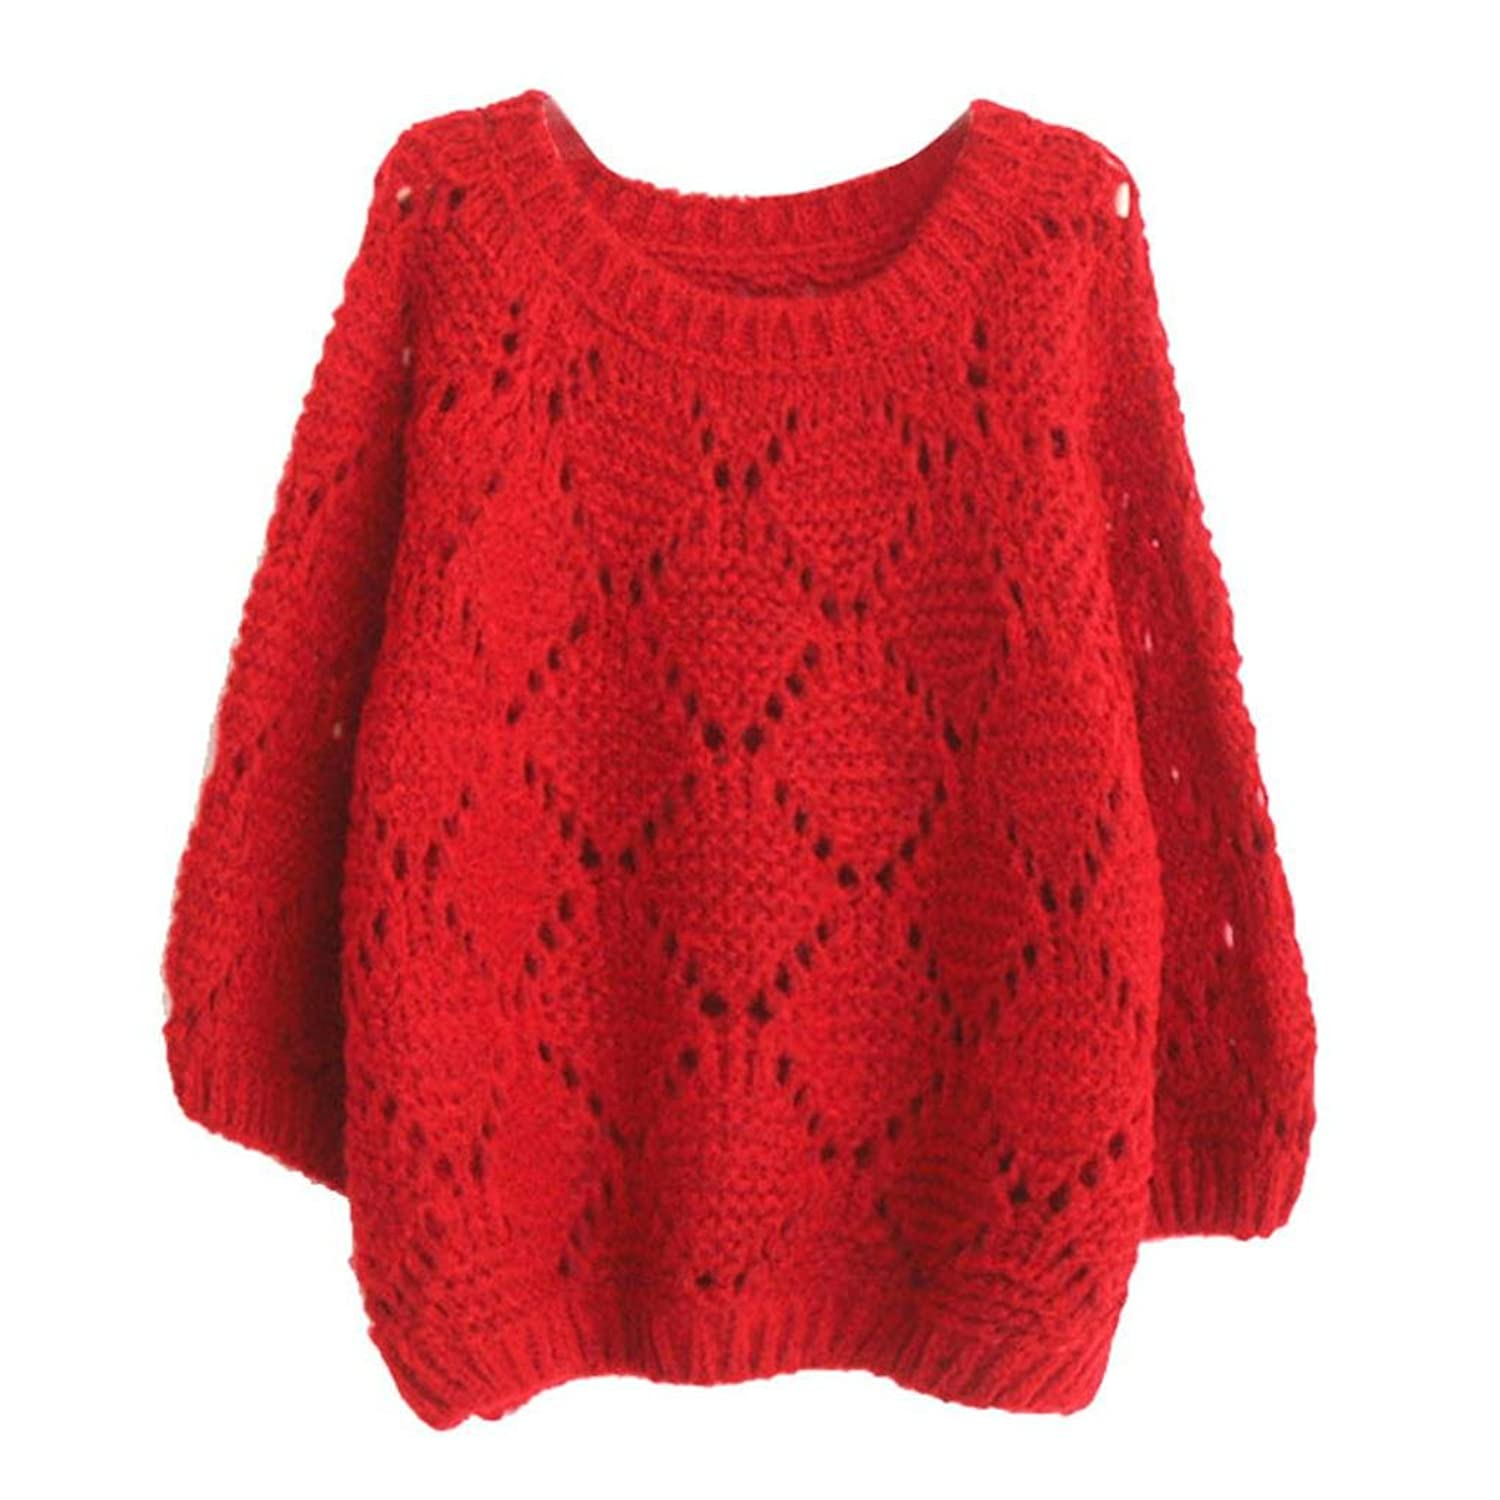 Coper@ Womens Pullover Knit Sweater Batwing Sleeve Cardigan